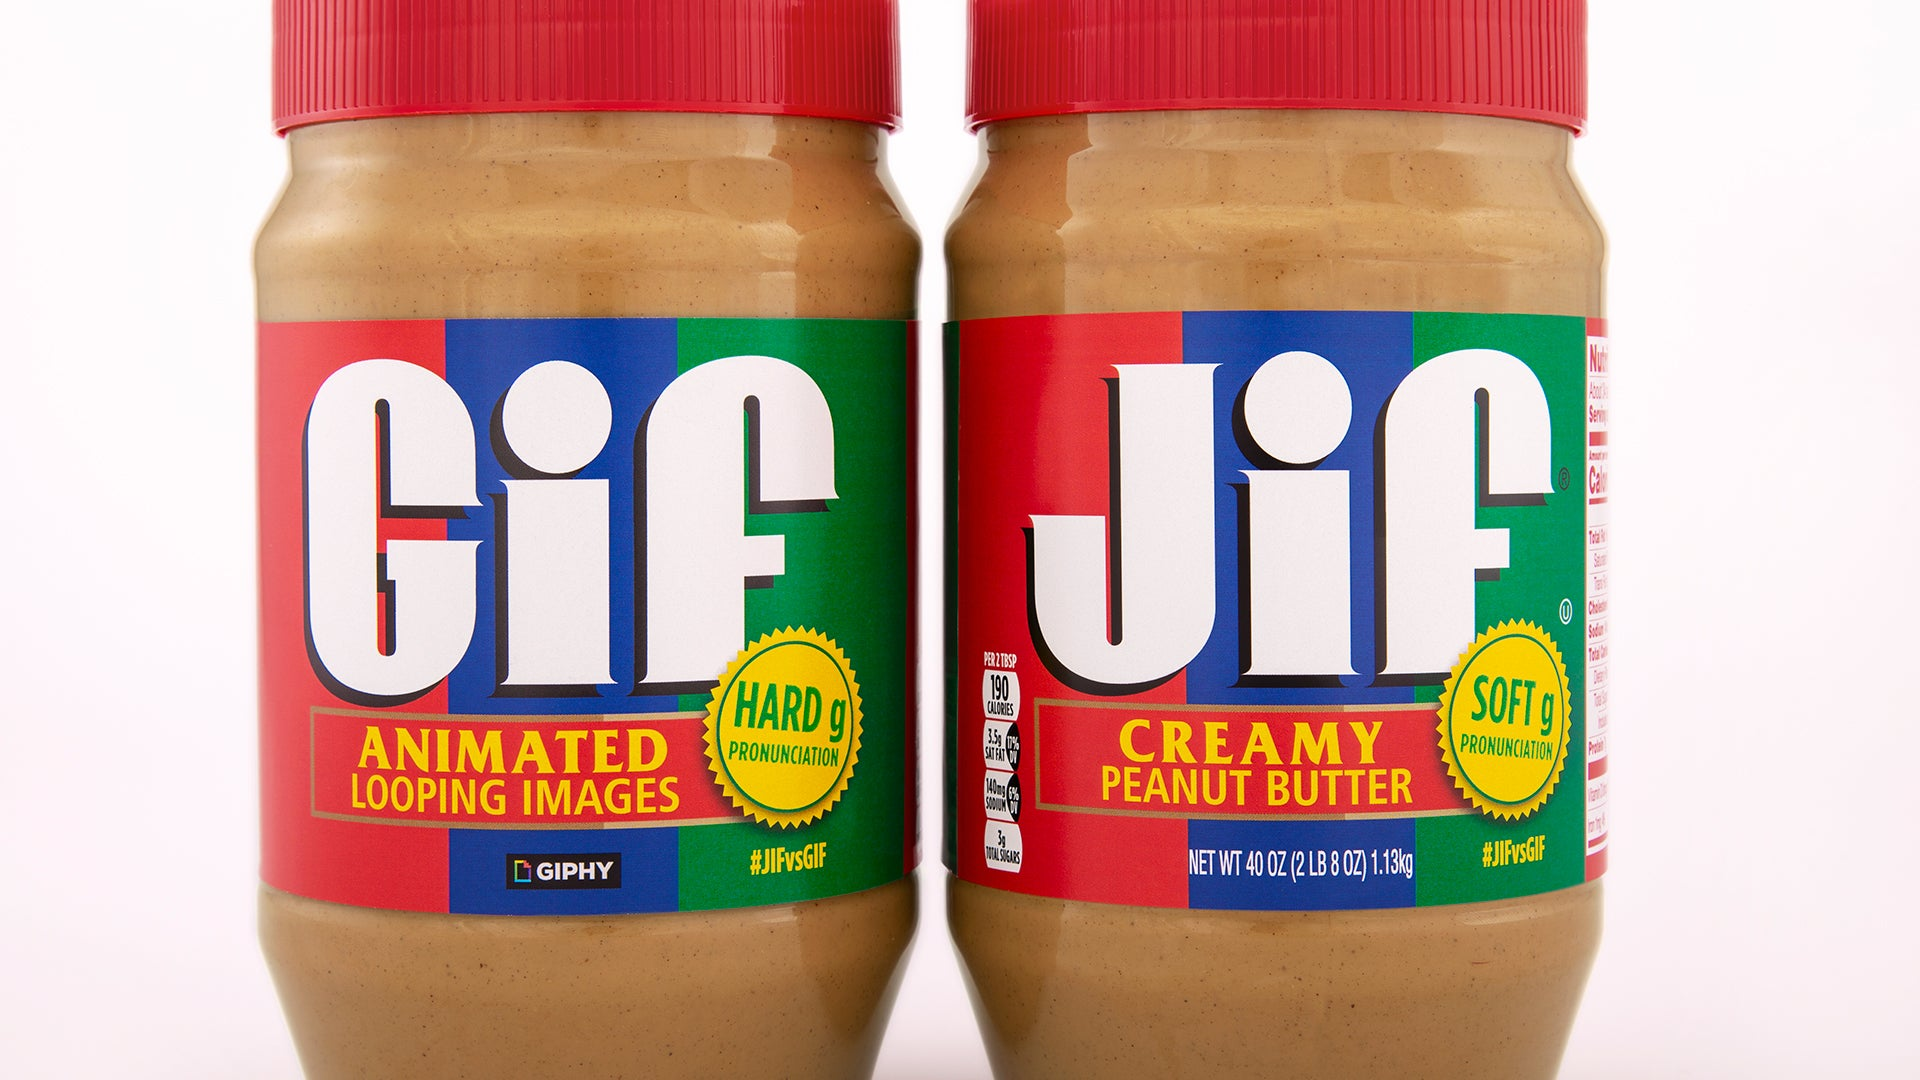 Peanut Butter Company Finally Addresses GIF Pronunciation Issue